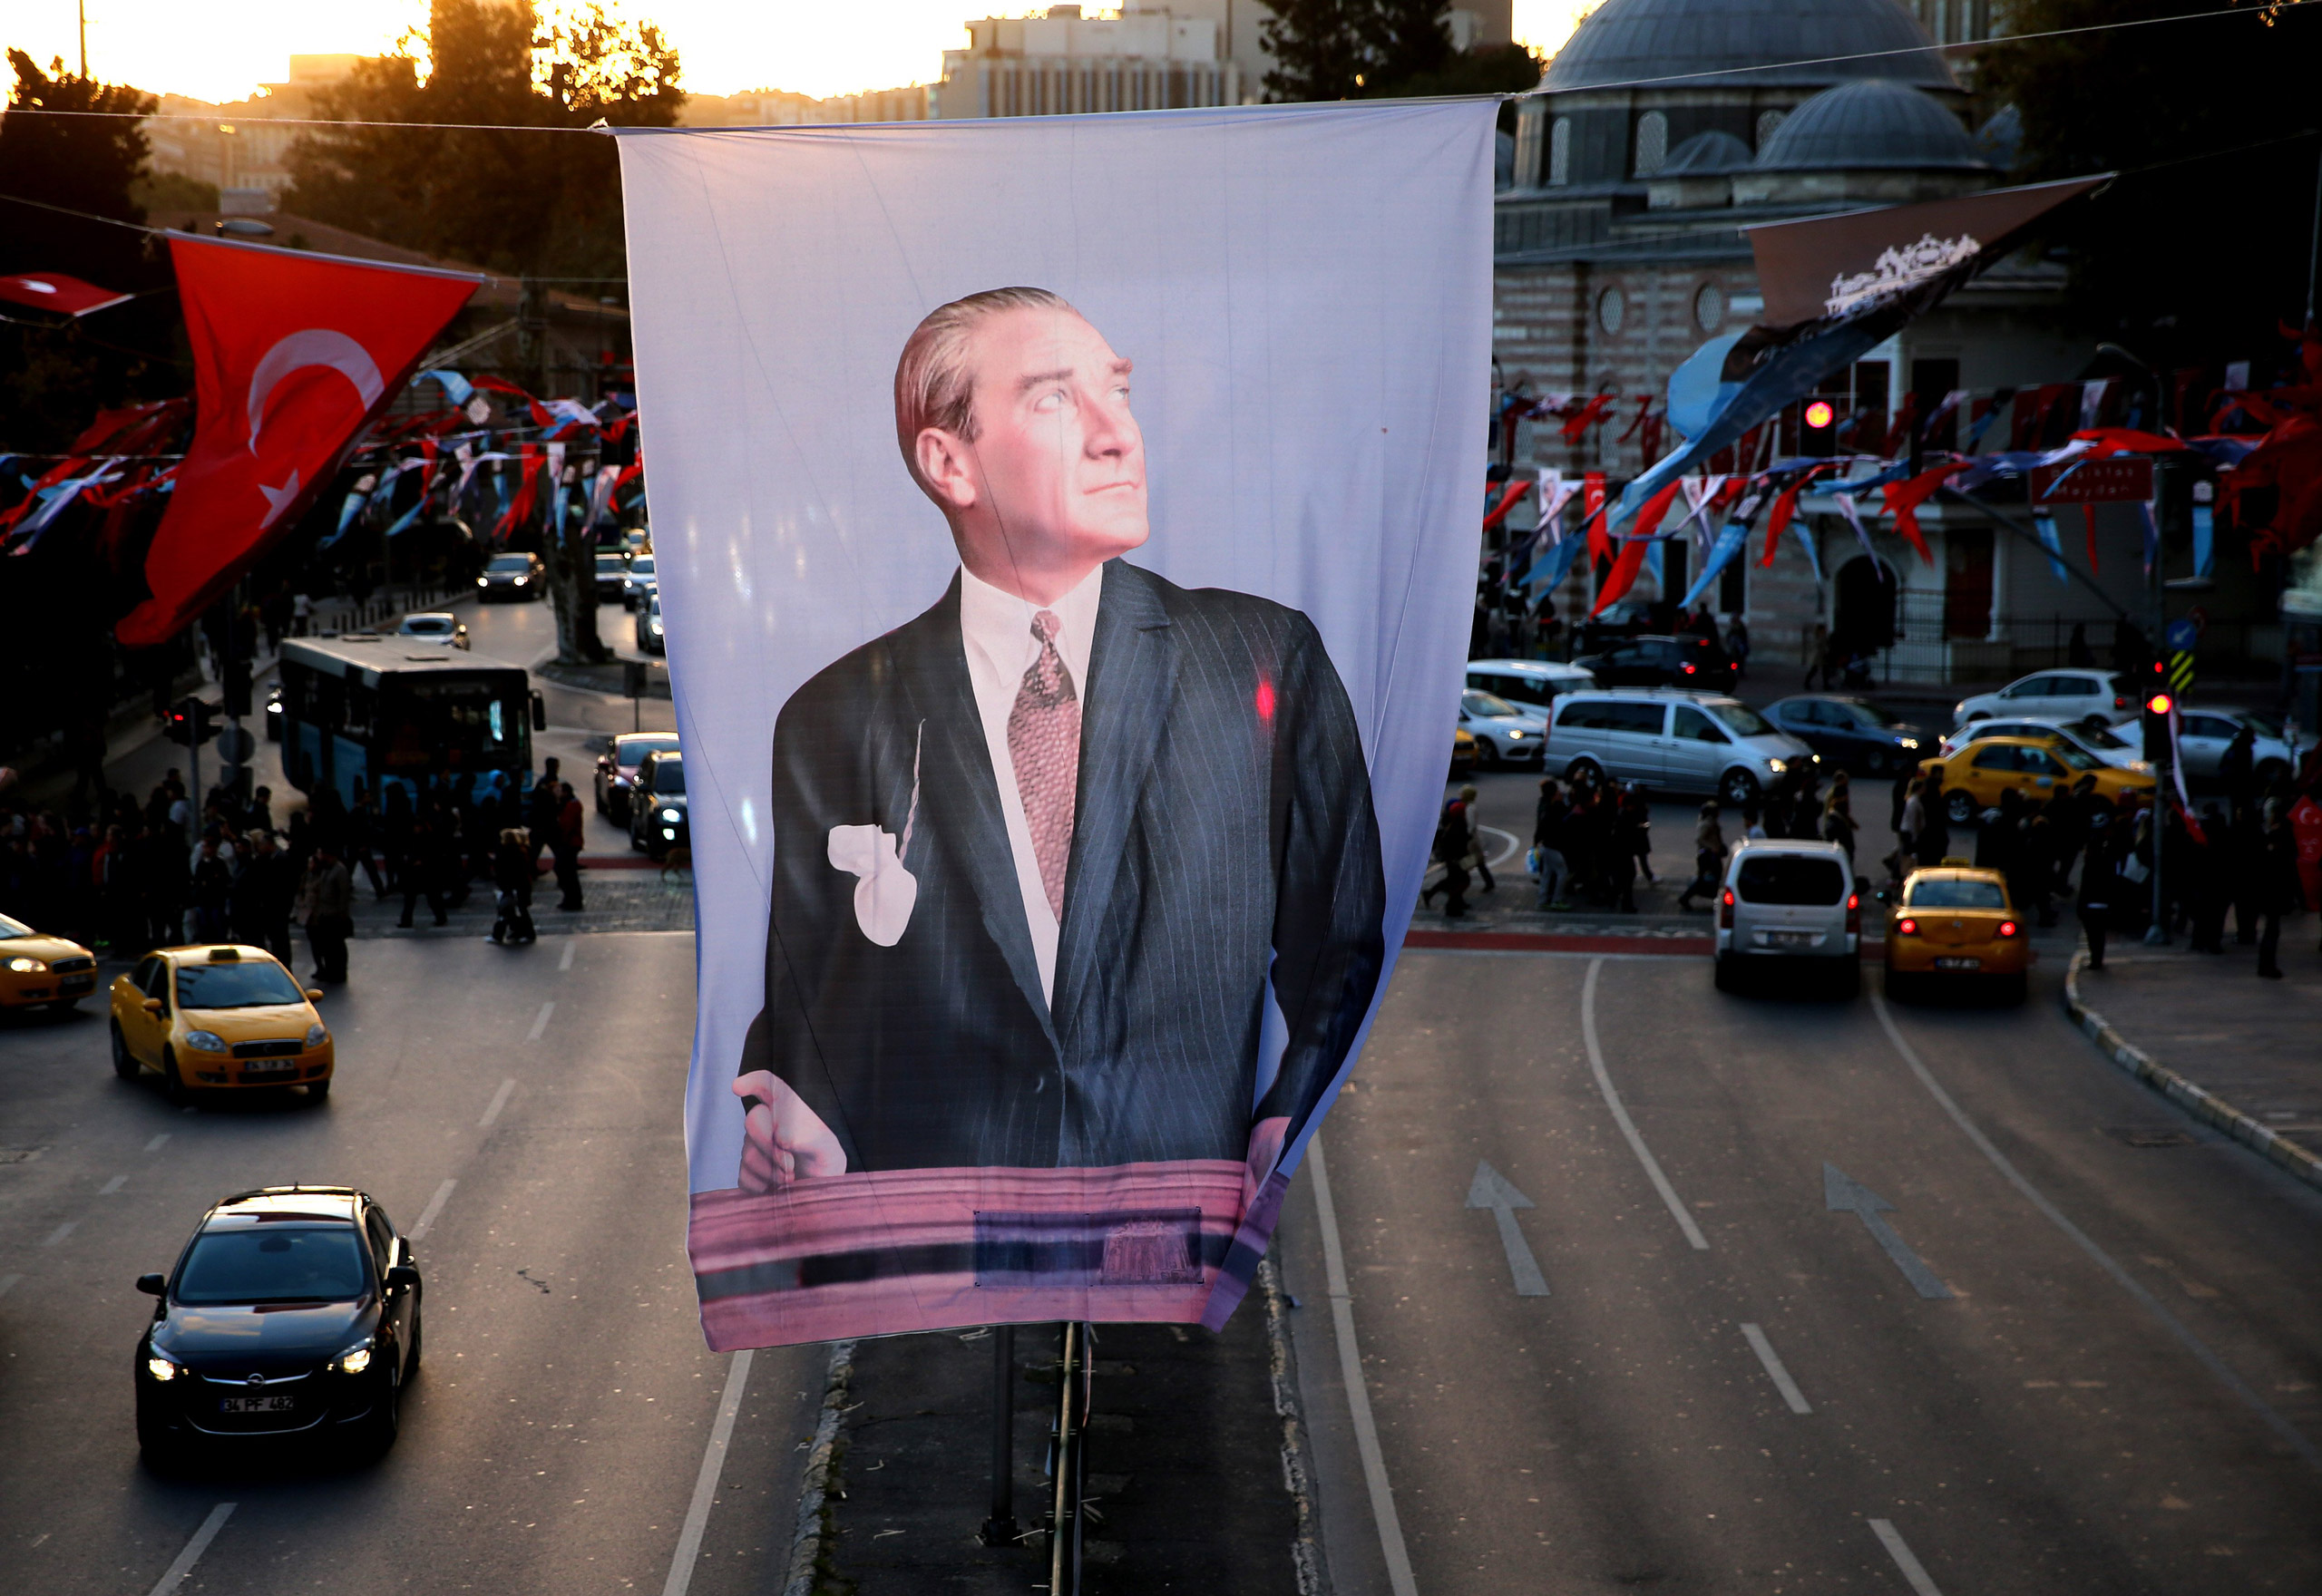 A portrait flag of the Turkish Republic founder Mustafa Kemal Ataturk hangs in Besiktas square in Istanbul, on Oct. 31, 2015.